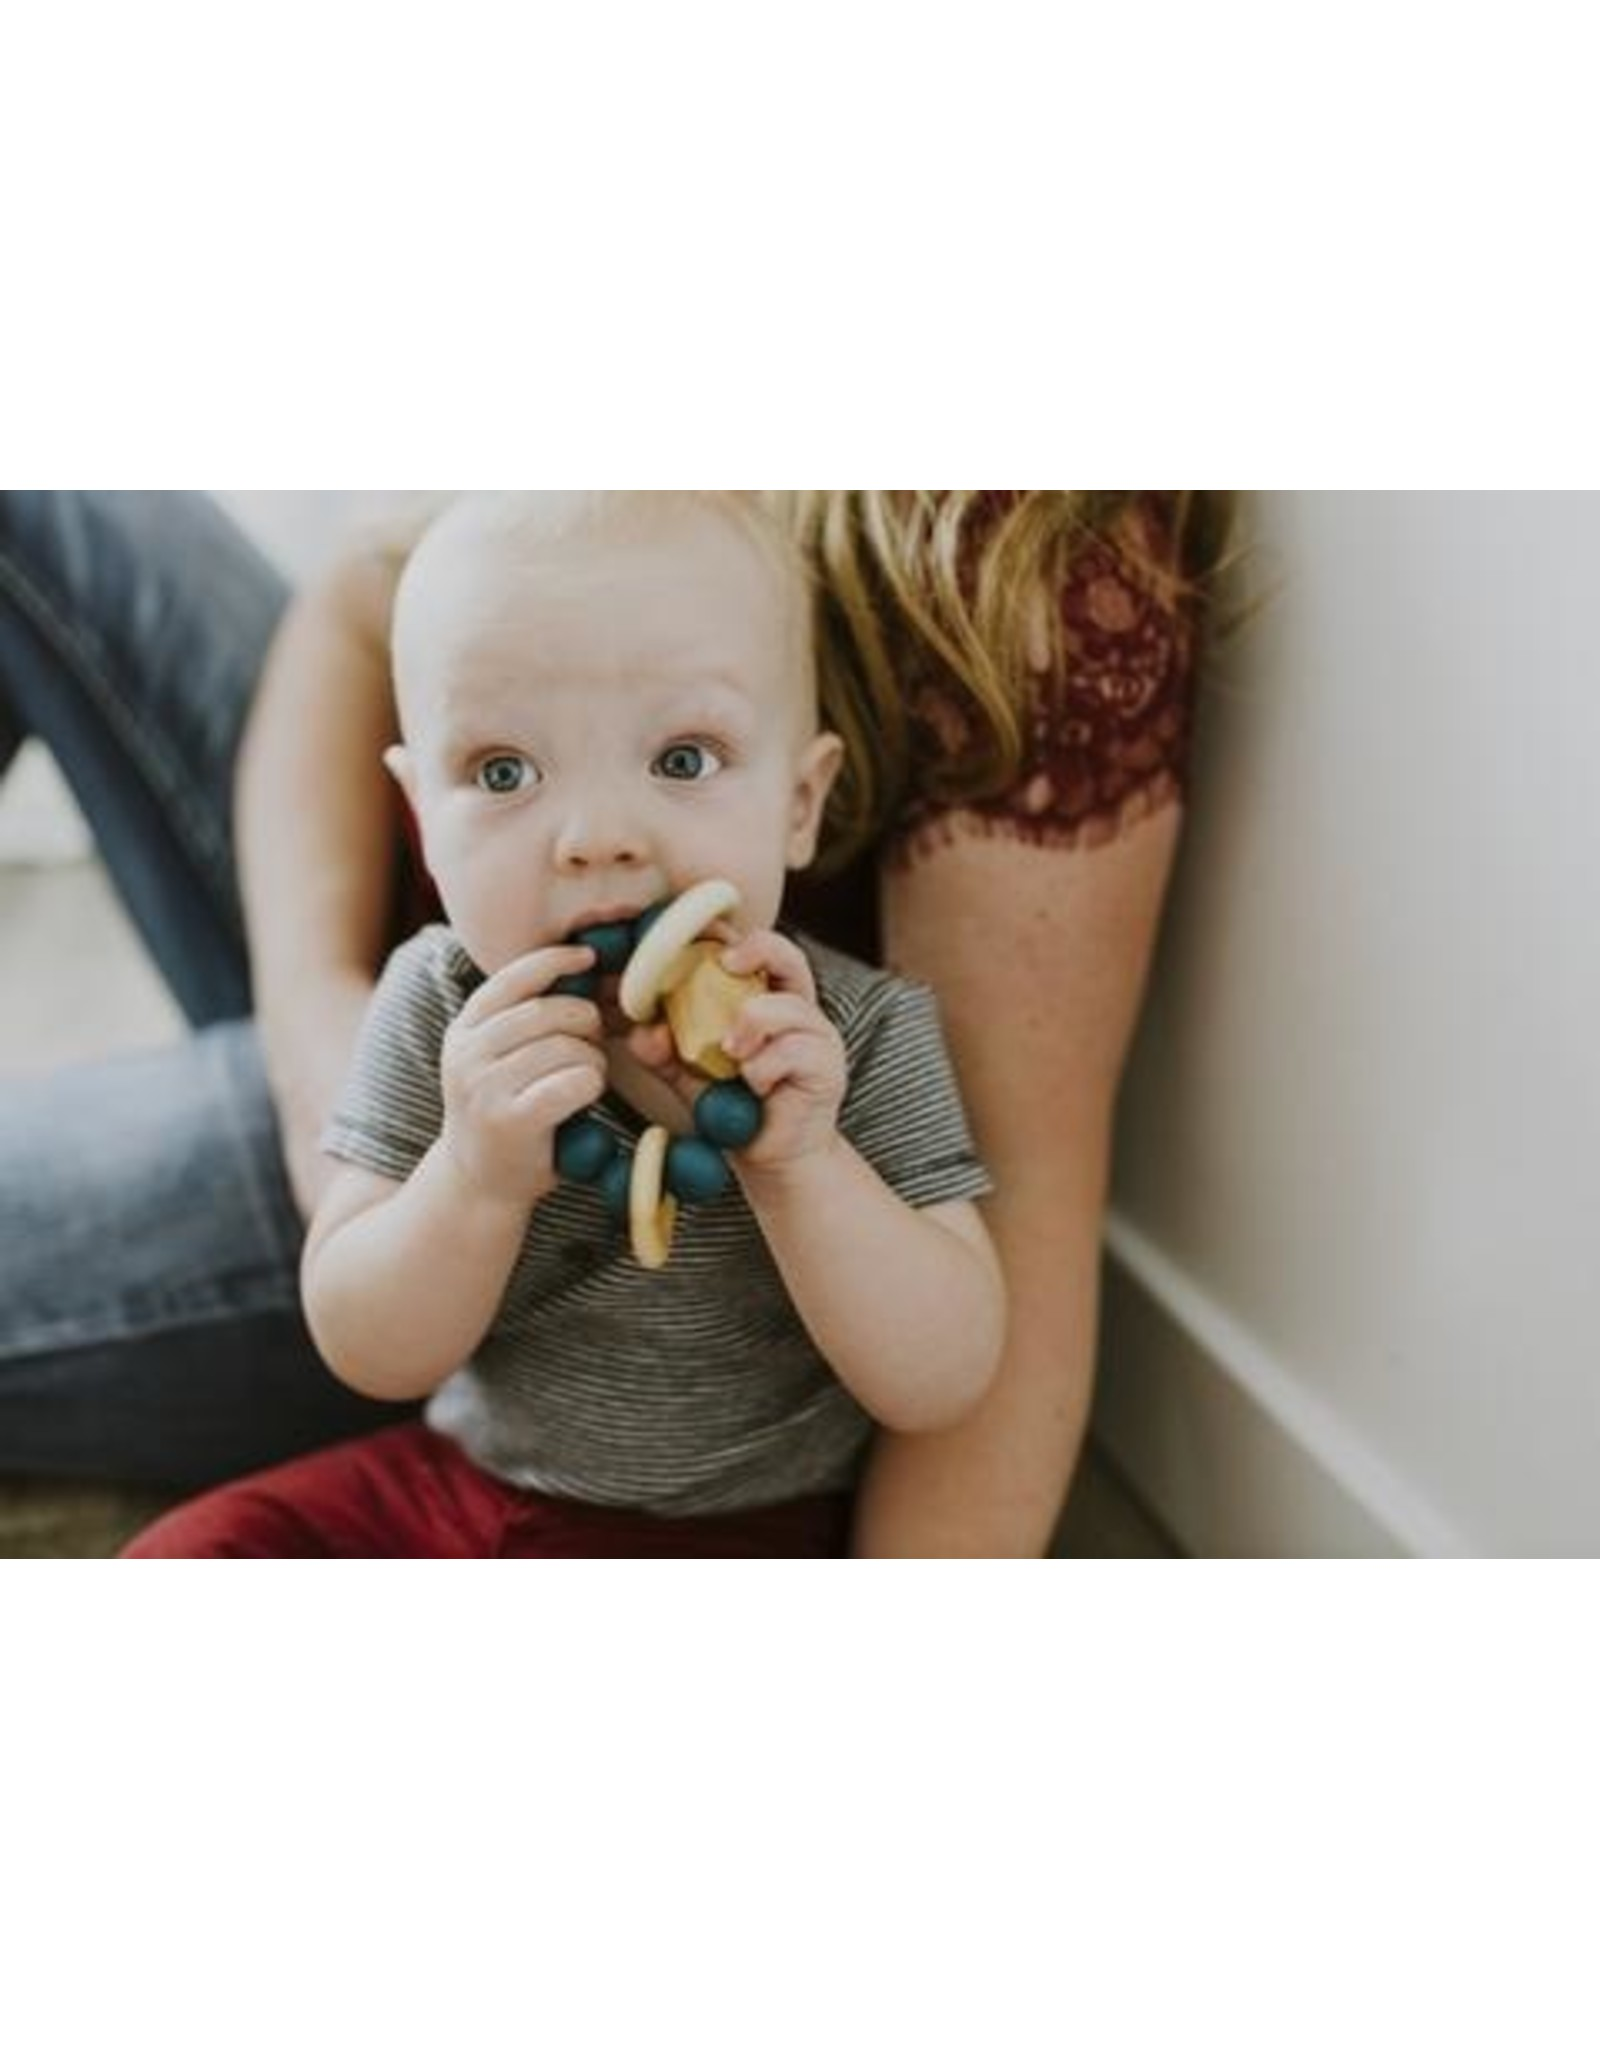 Chewable Charm Hayes Silicone + Wood Teether Ring- Peacock